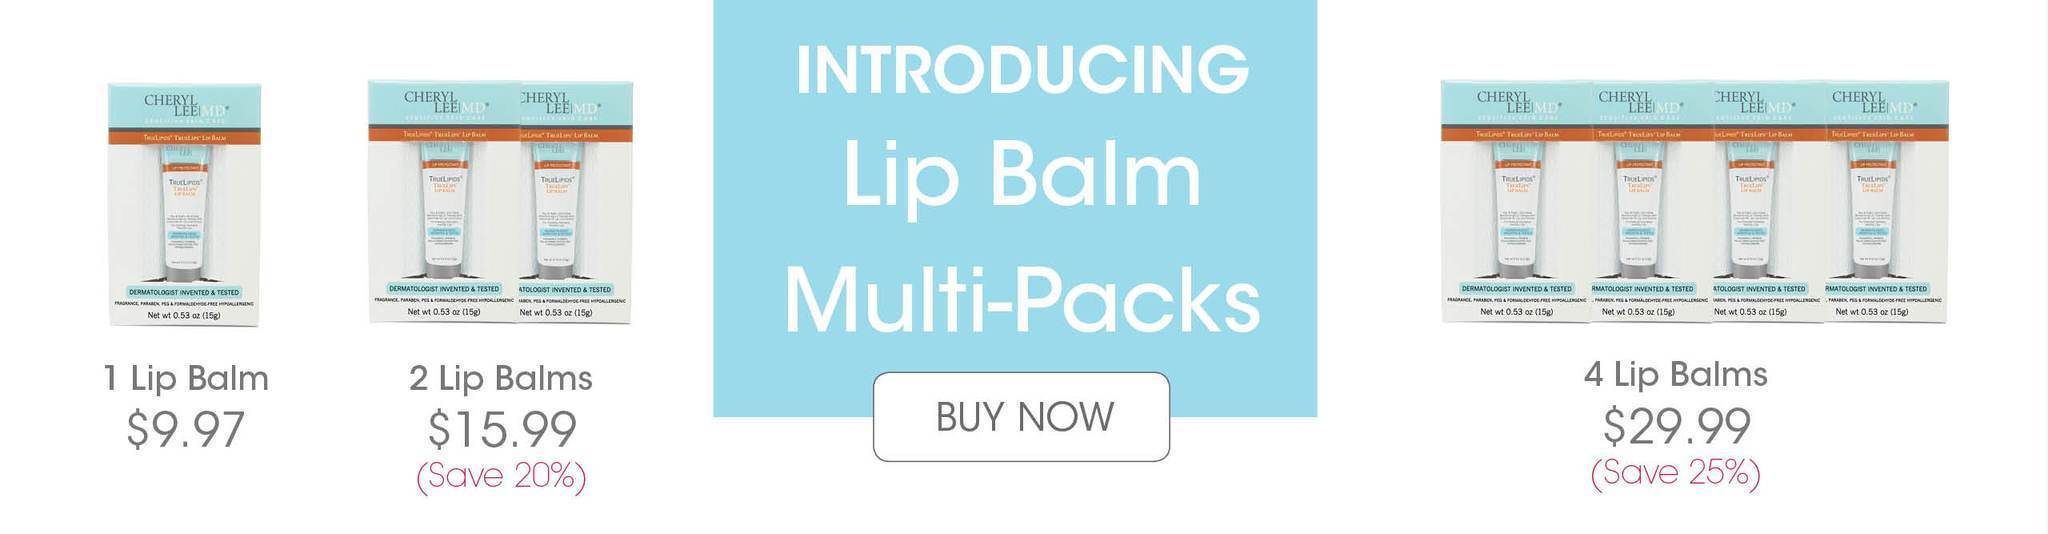 Multi-Pack Lip Balm now available